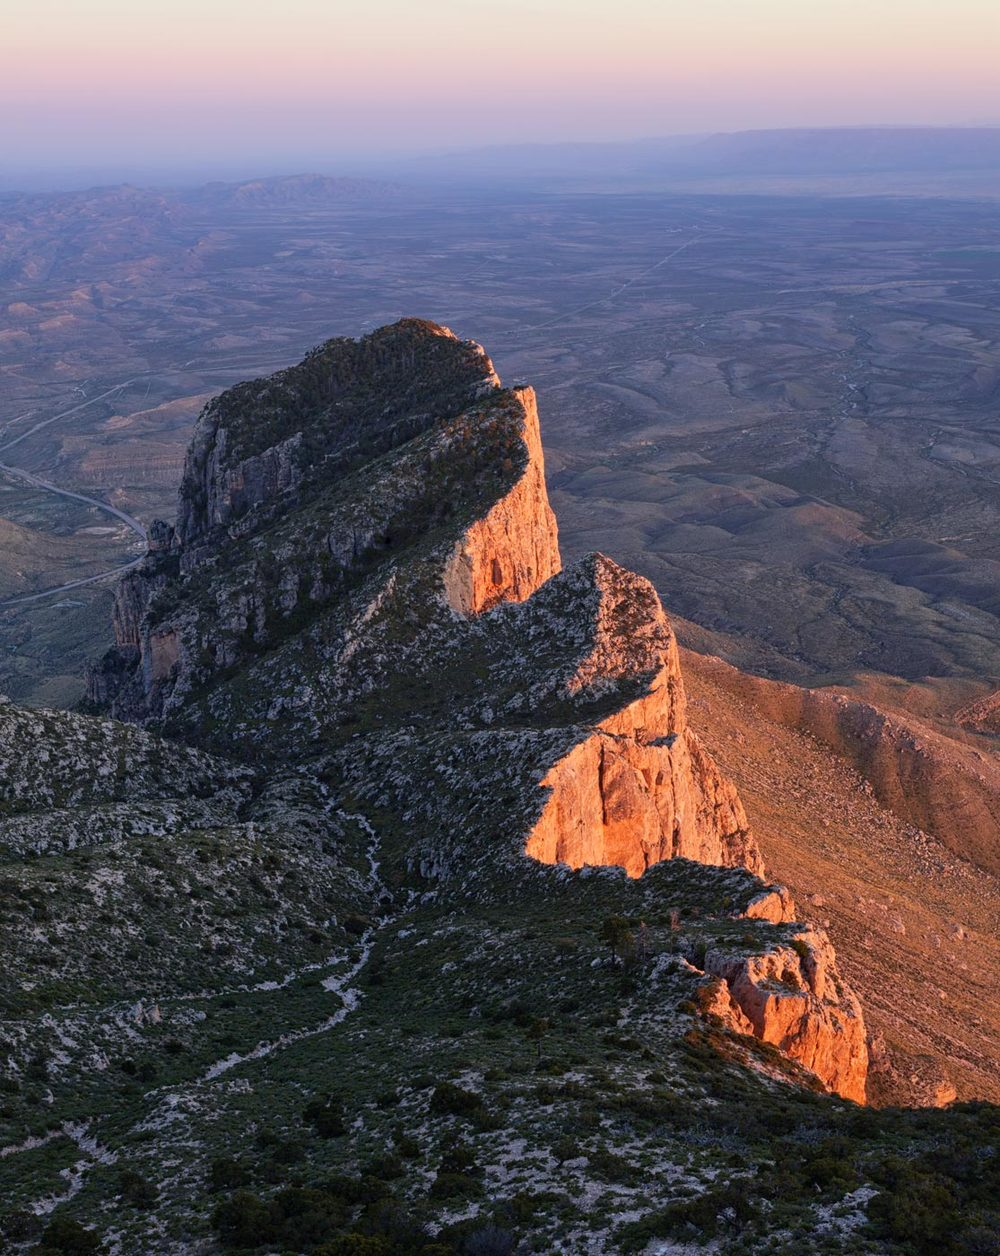 Guadalupe-Mountains-National-Park-ABP-Guadalupe-Peak_El-Capitan-sunset.jpg